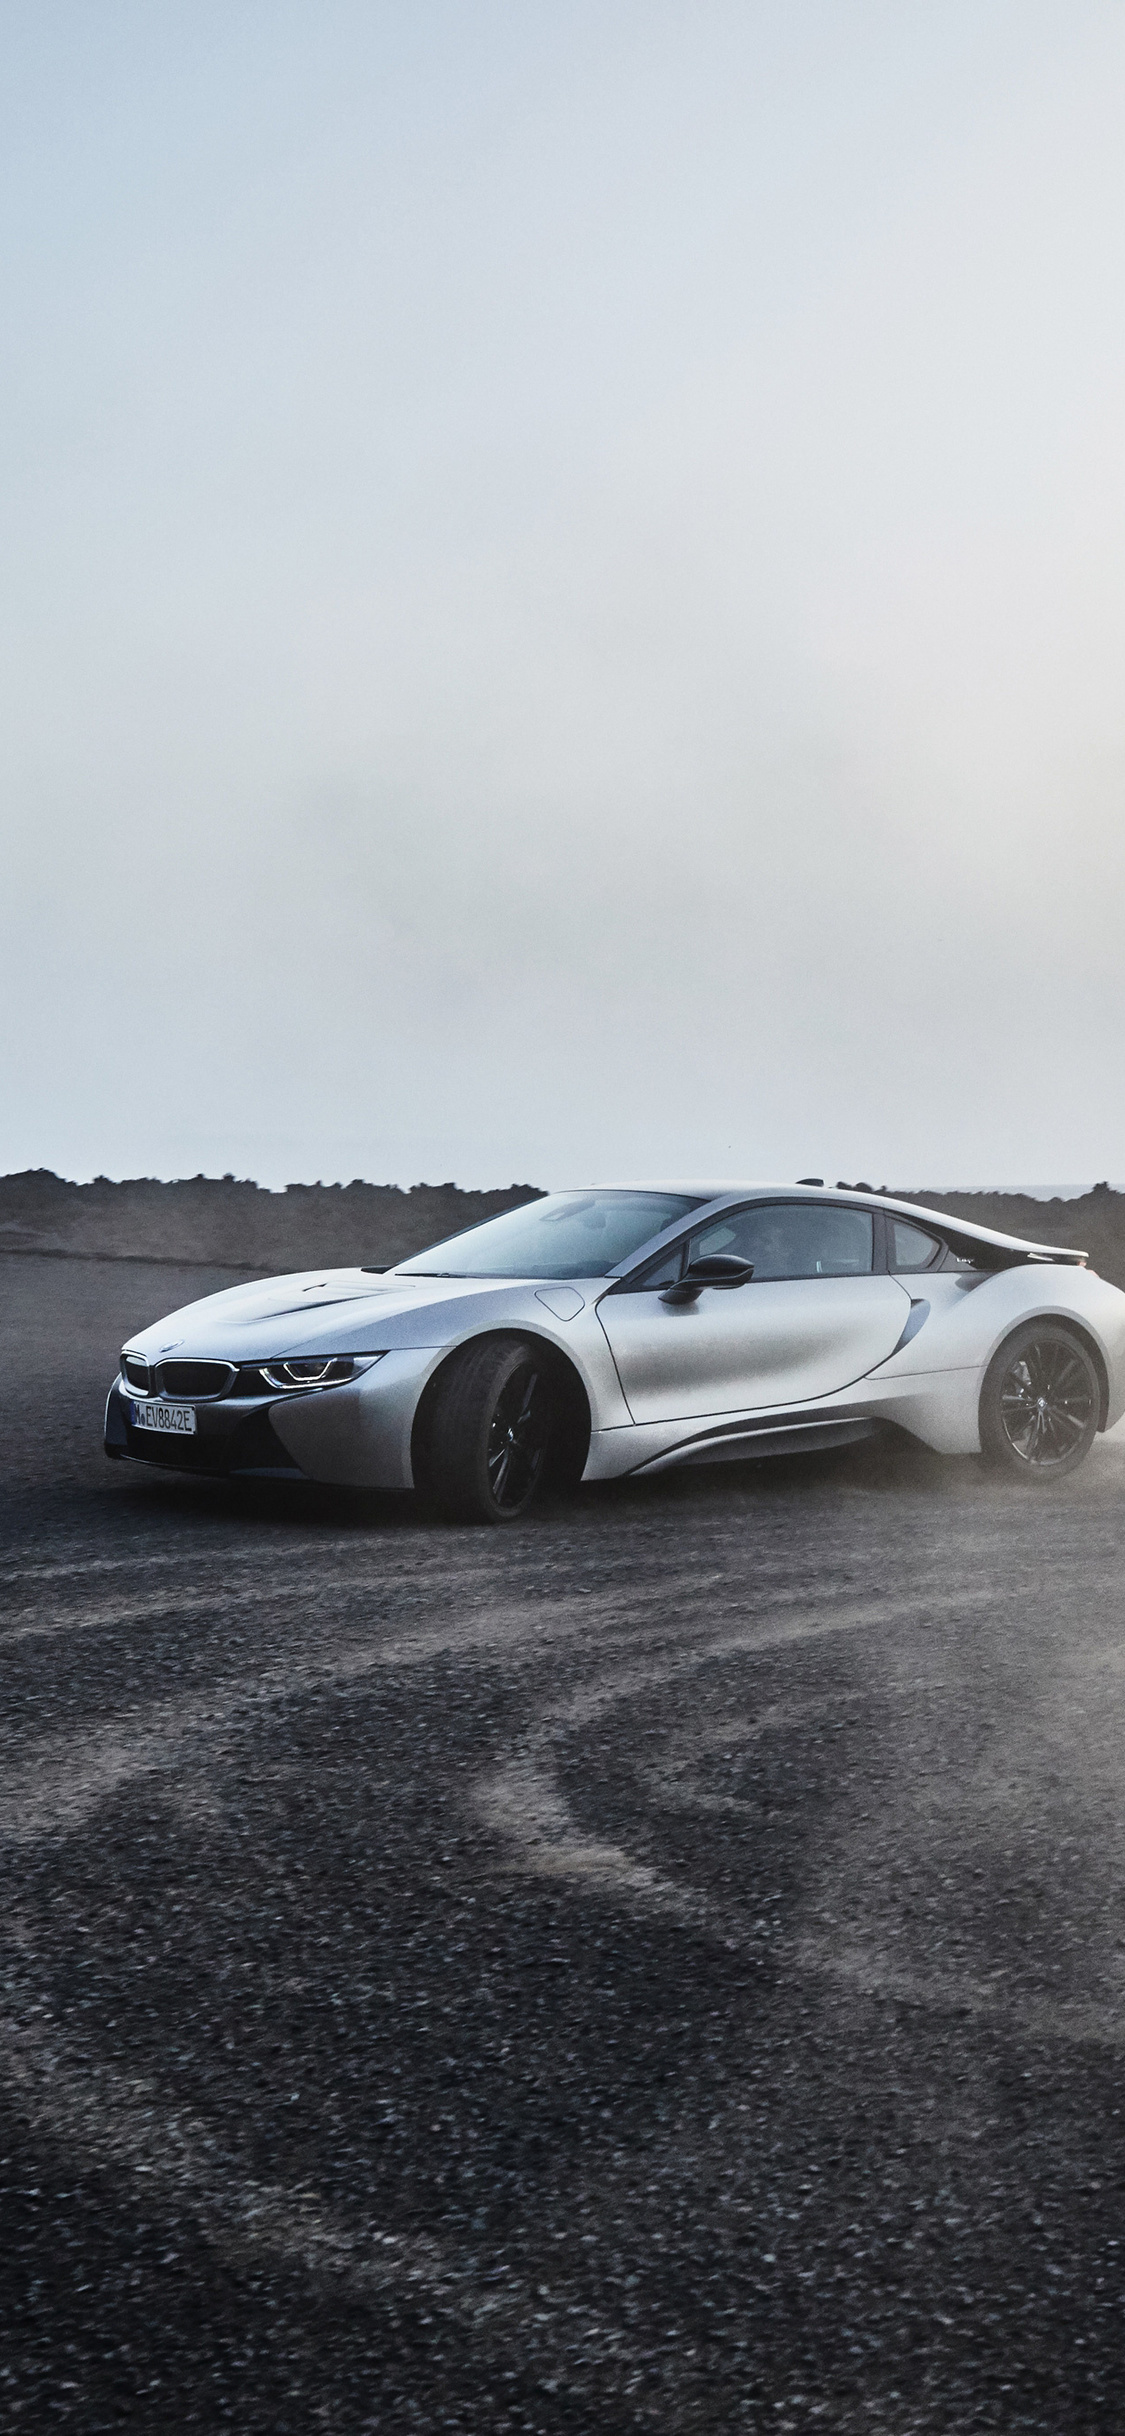 1125x2436 Bmw I8 Coupe 2018 Iphone Xs Iphone 10 Iphone X Hd 4k